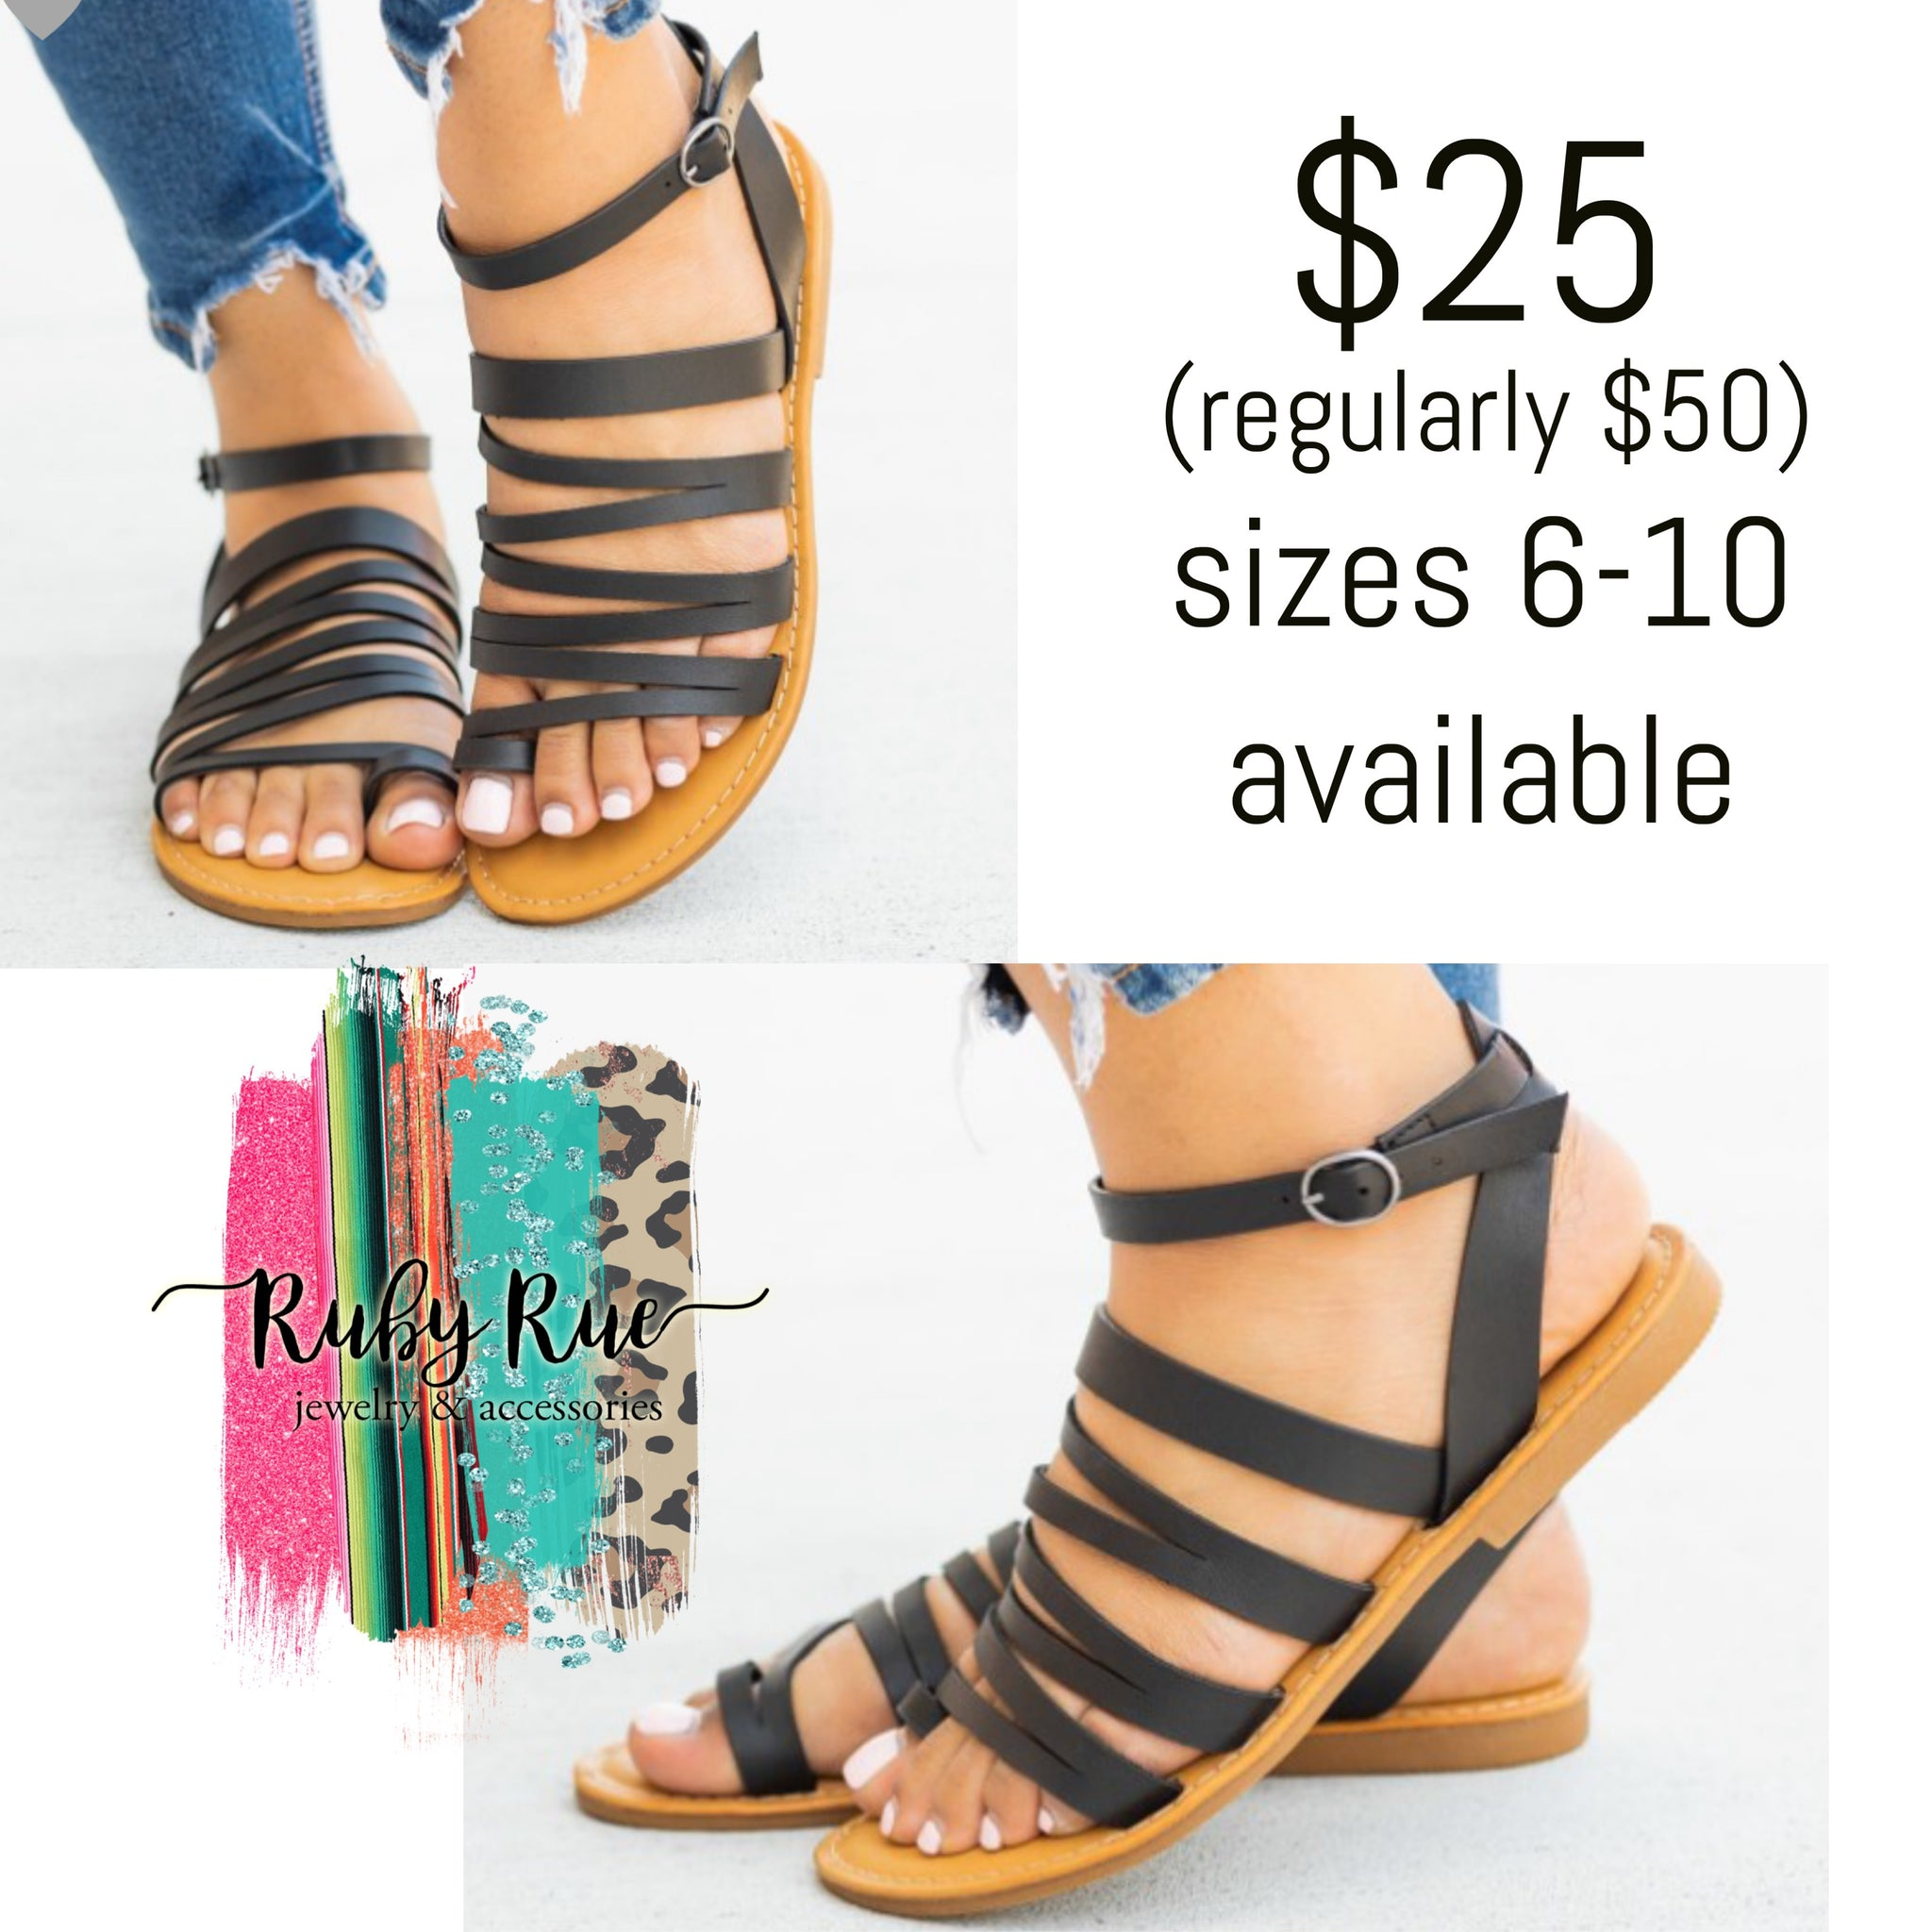 Black Strappy Sandals - Ruby Rue Jewelry & Accessories